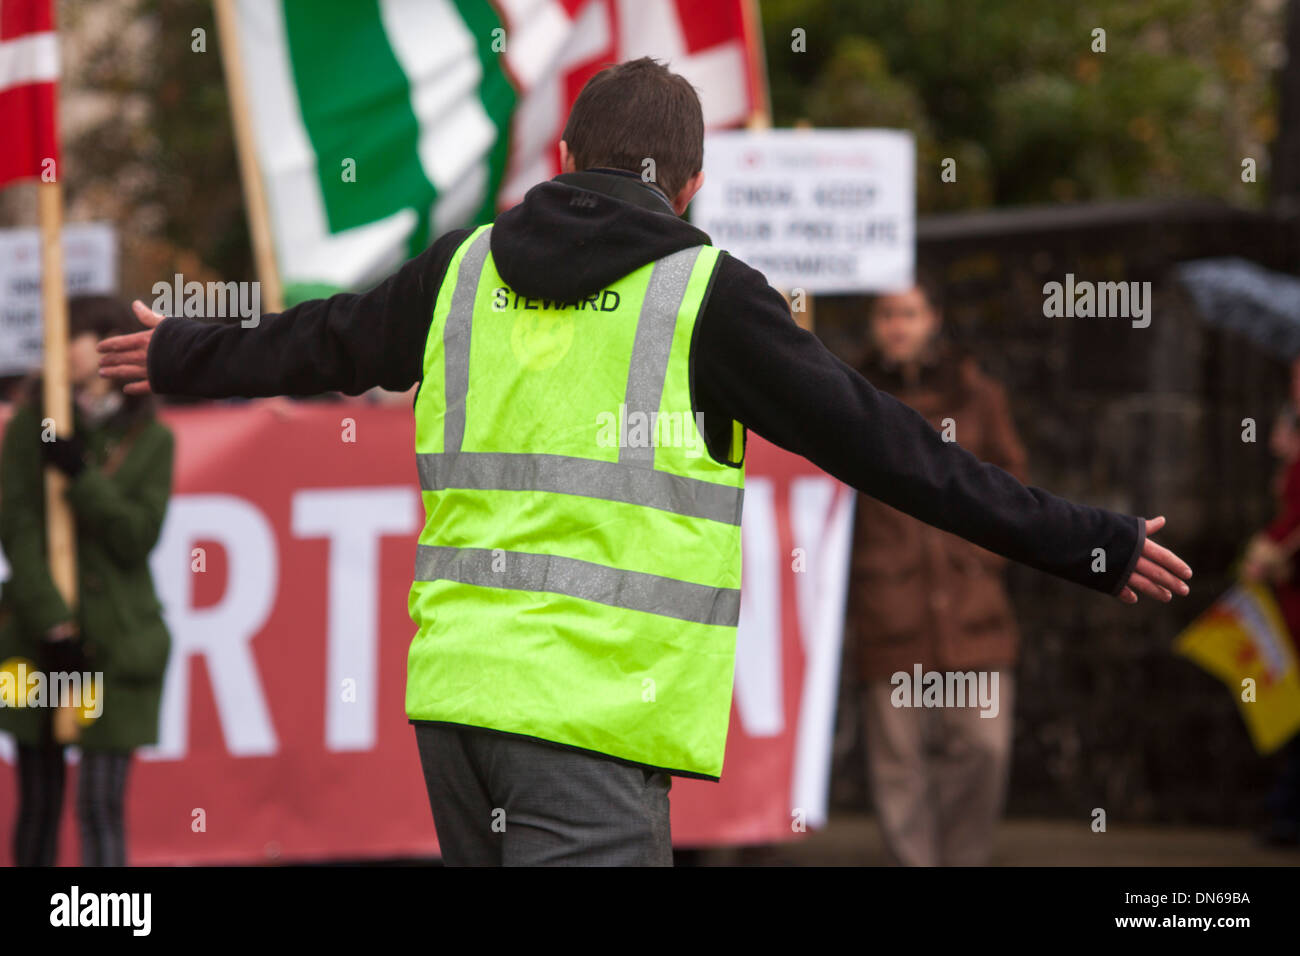 A Steward at a Pro life march in Castlebar,Co. Mayo,Ireland,where protesters march against the new Irish Abortion laws - Stock Image